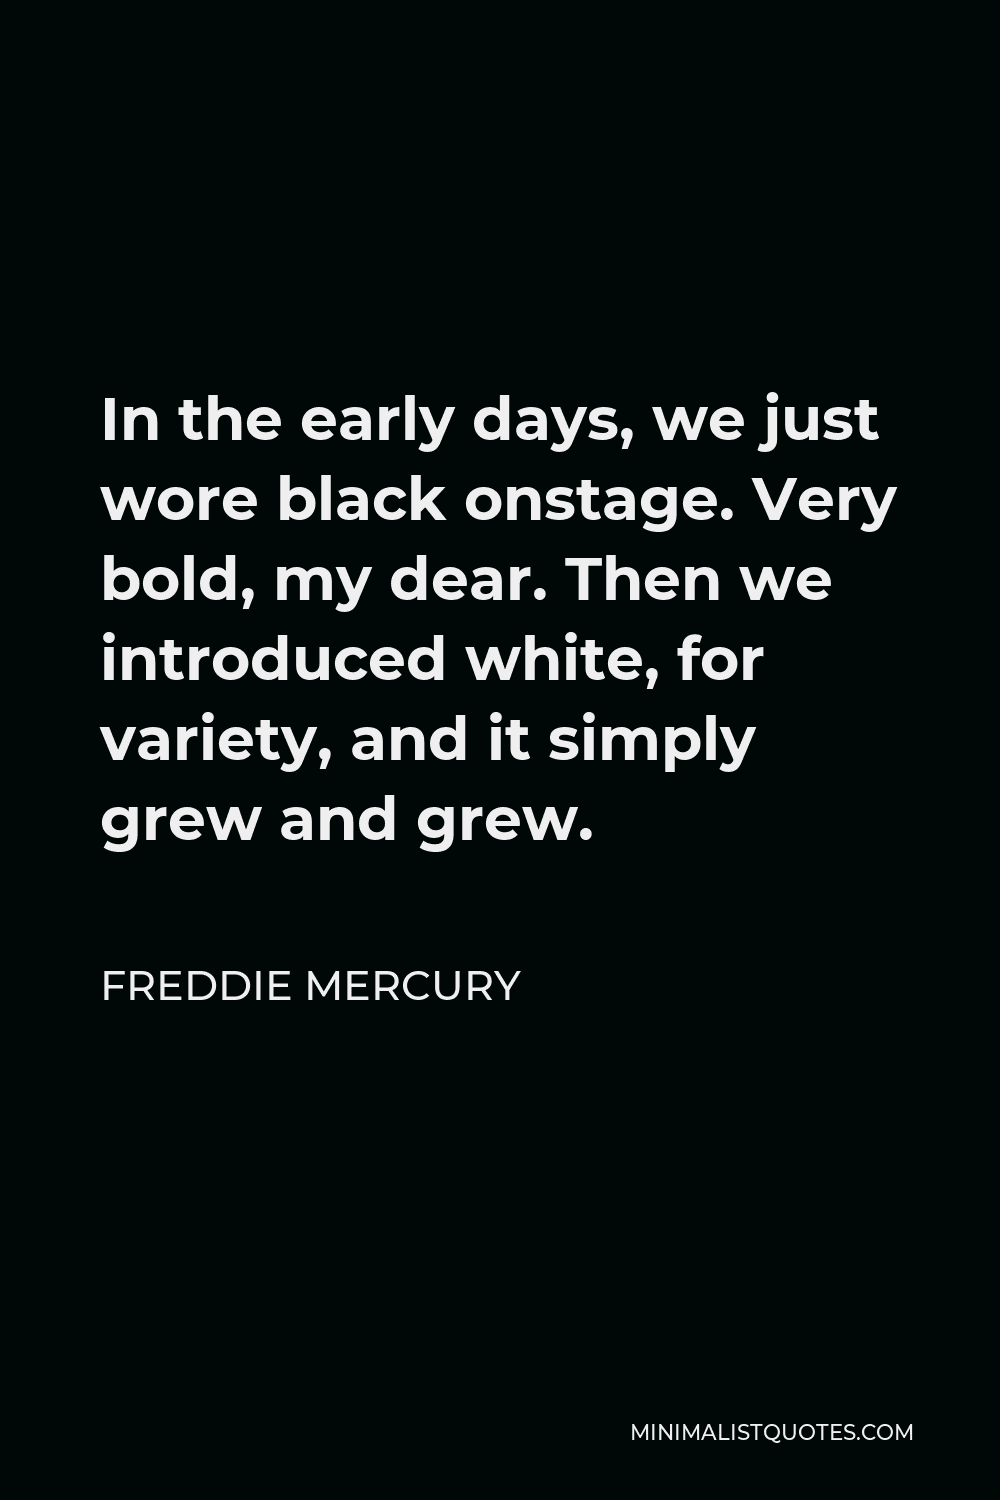 Freddie Mercury Quote - In the early days, we just wore black onstage. Very bold, my dear. Then we introduced white, for variety, and it simply grew and grew.